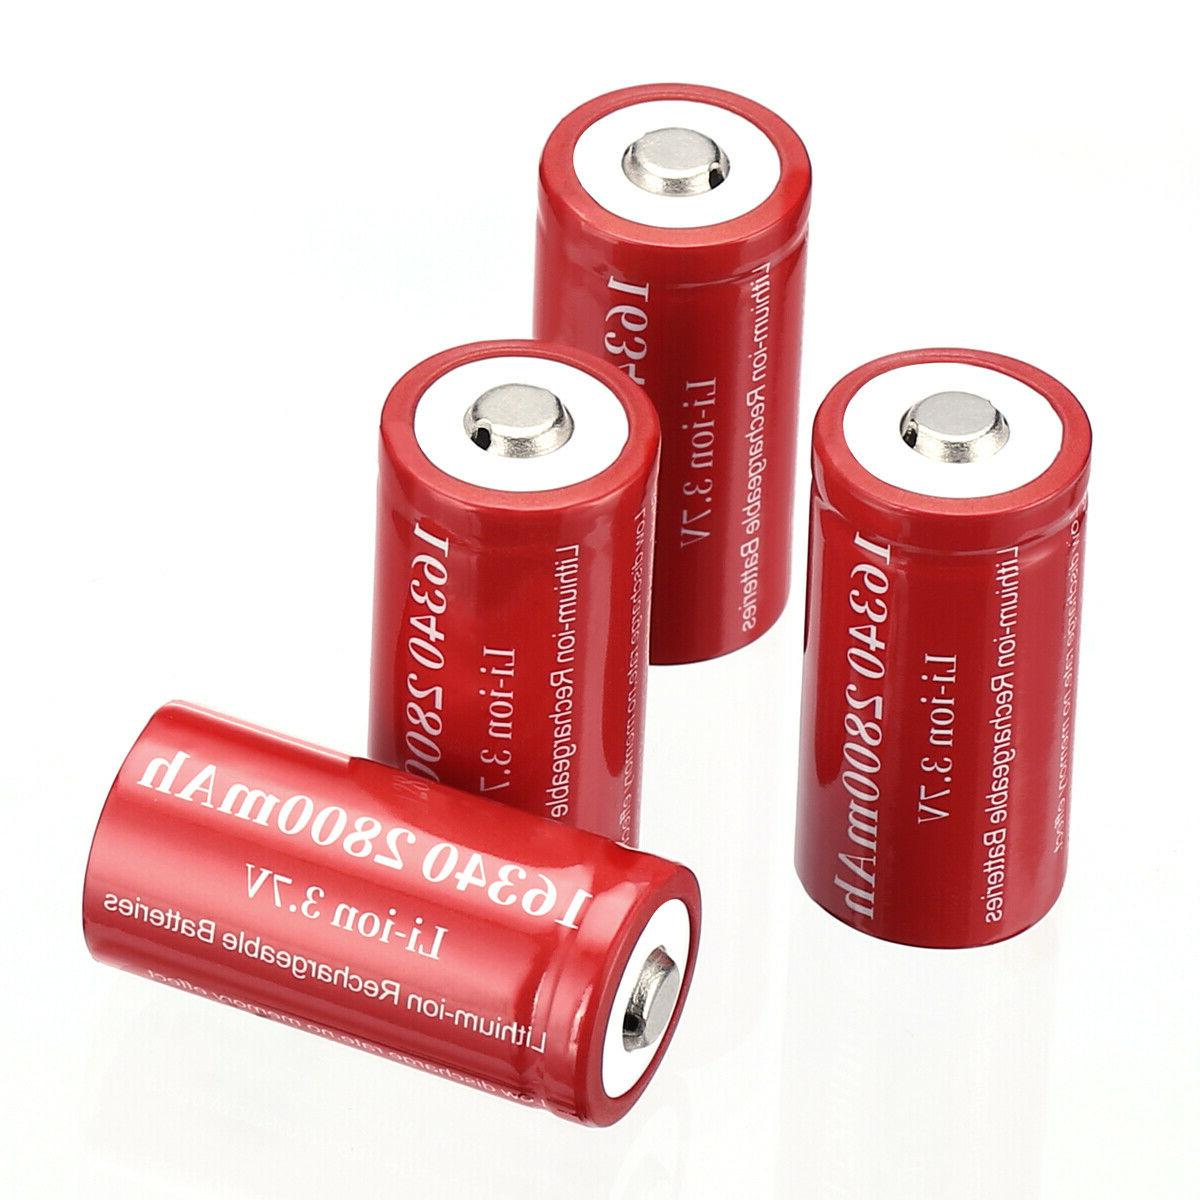 2800mAh Rechargeable Li-ion Battery Smart Charger Lot